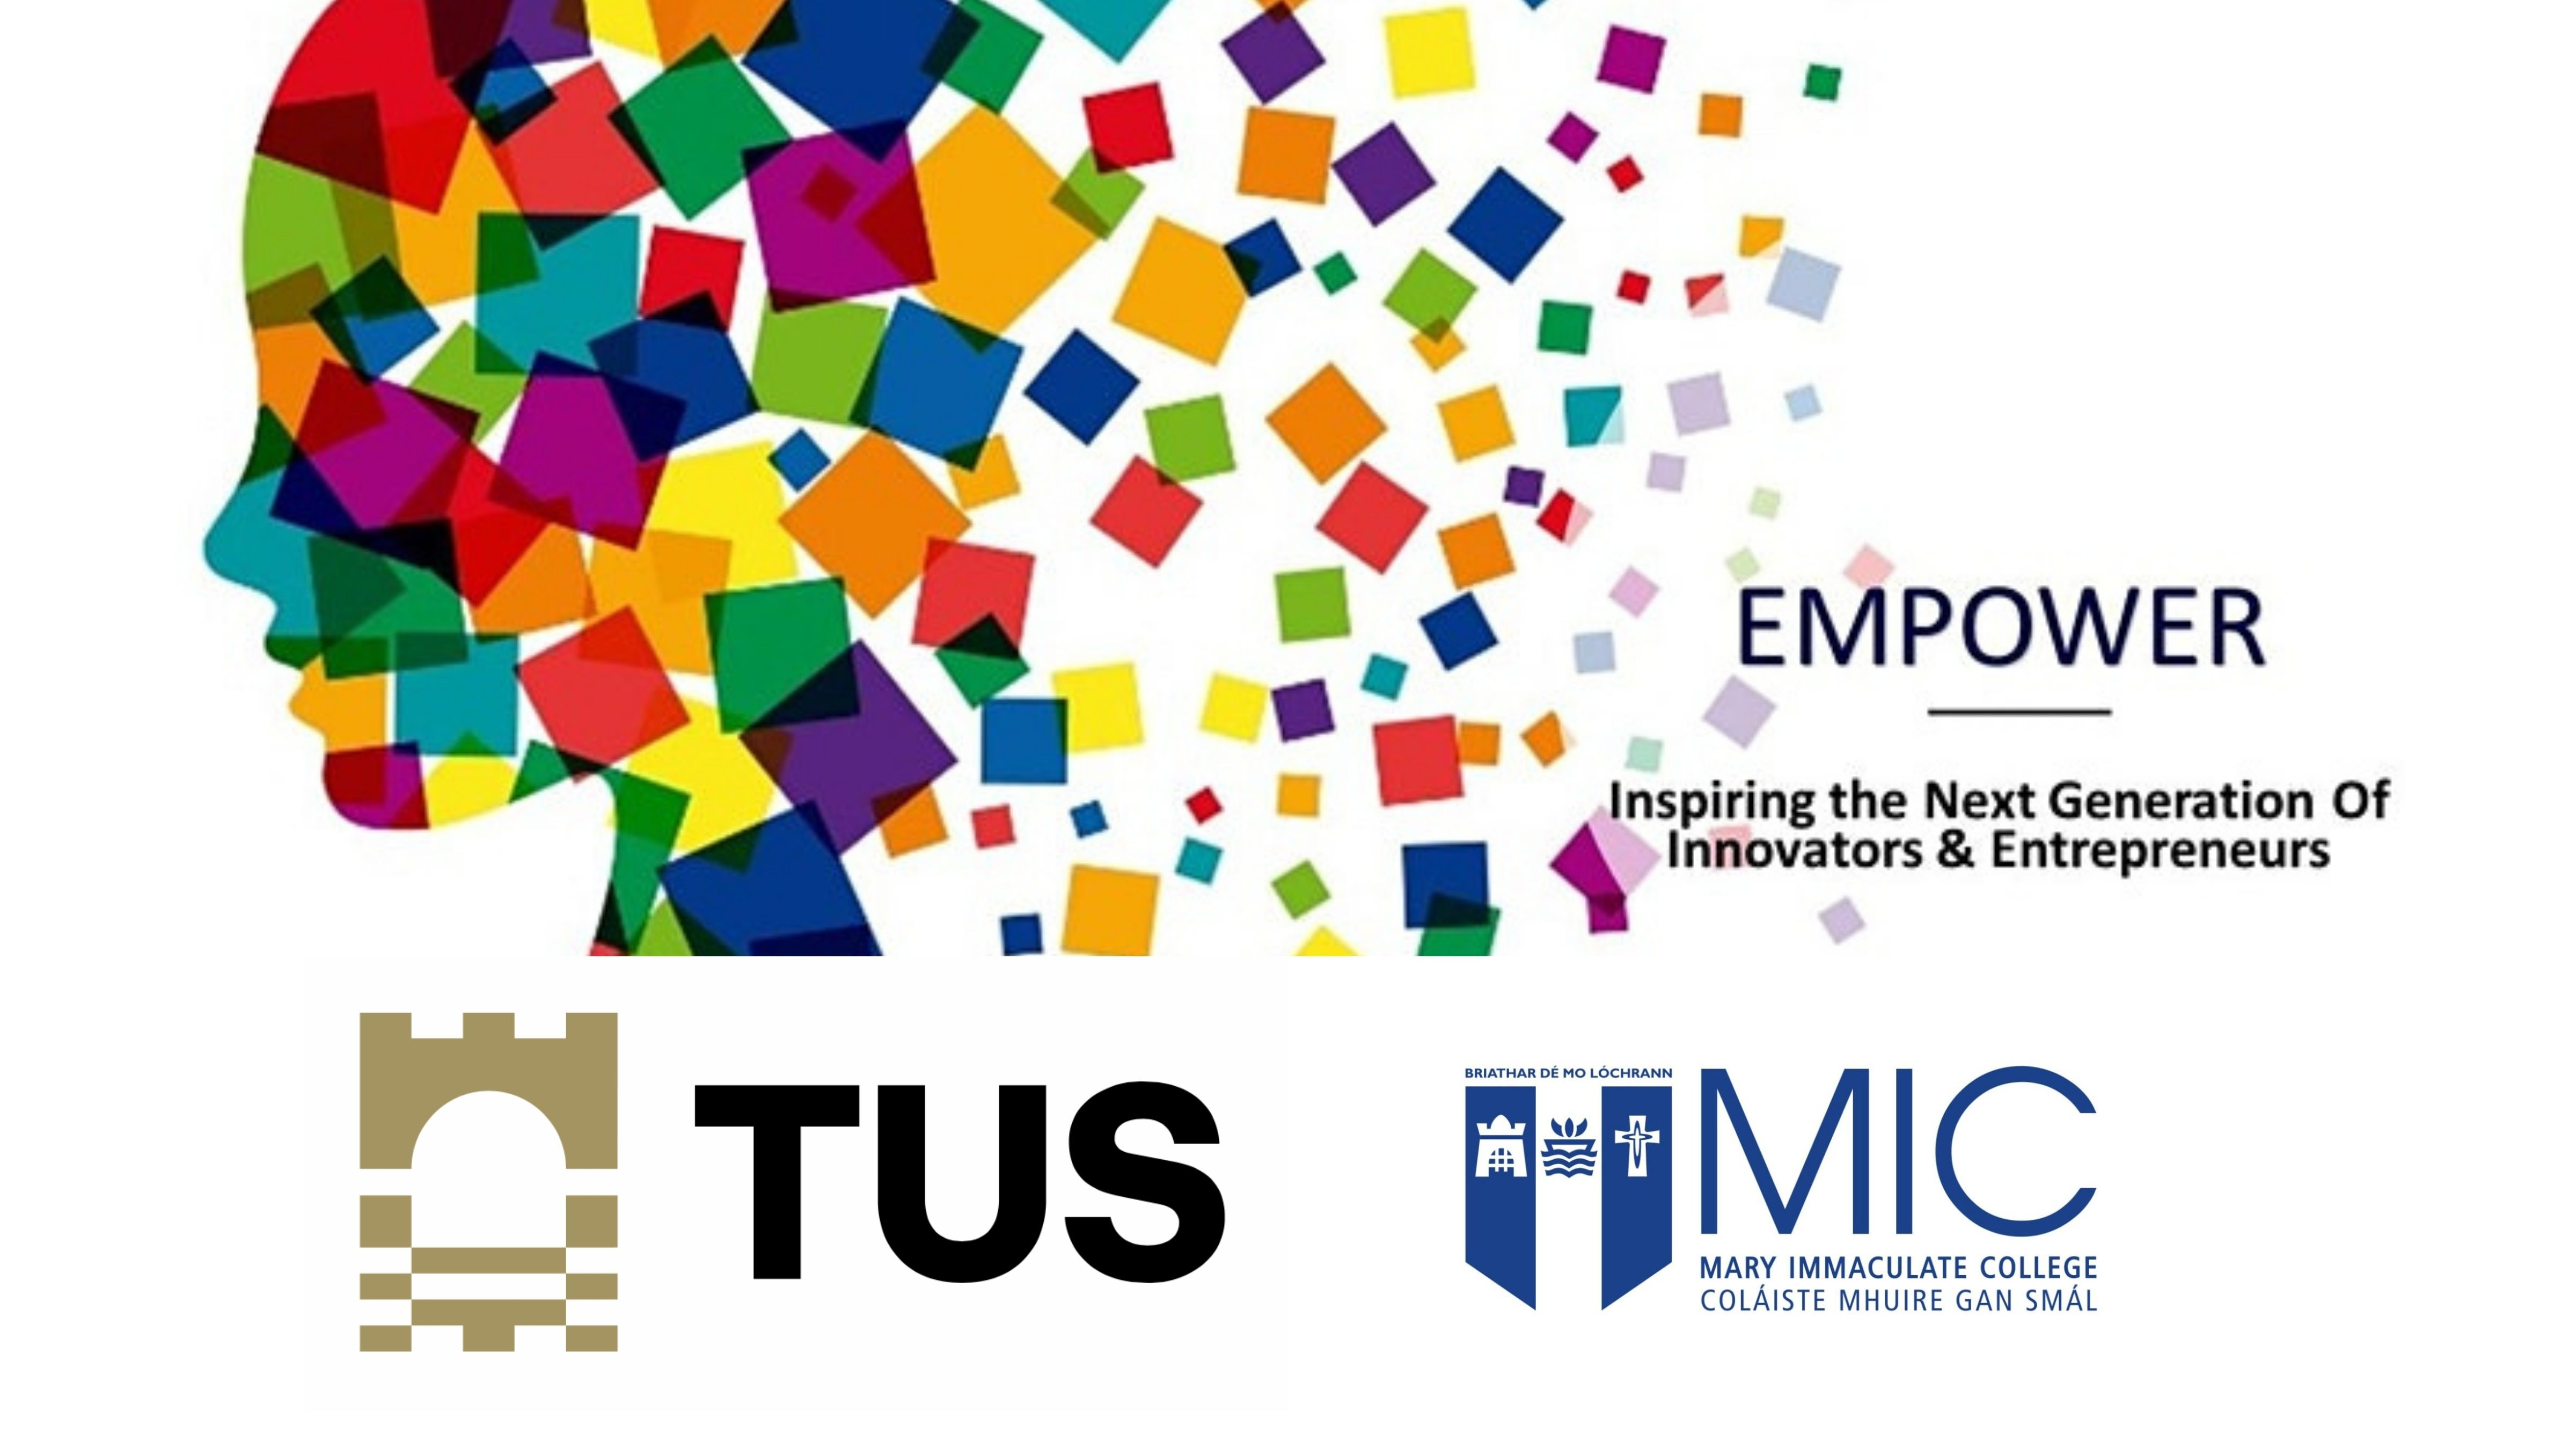 EMPOWER programme for innovative and entrepreneurial school students